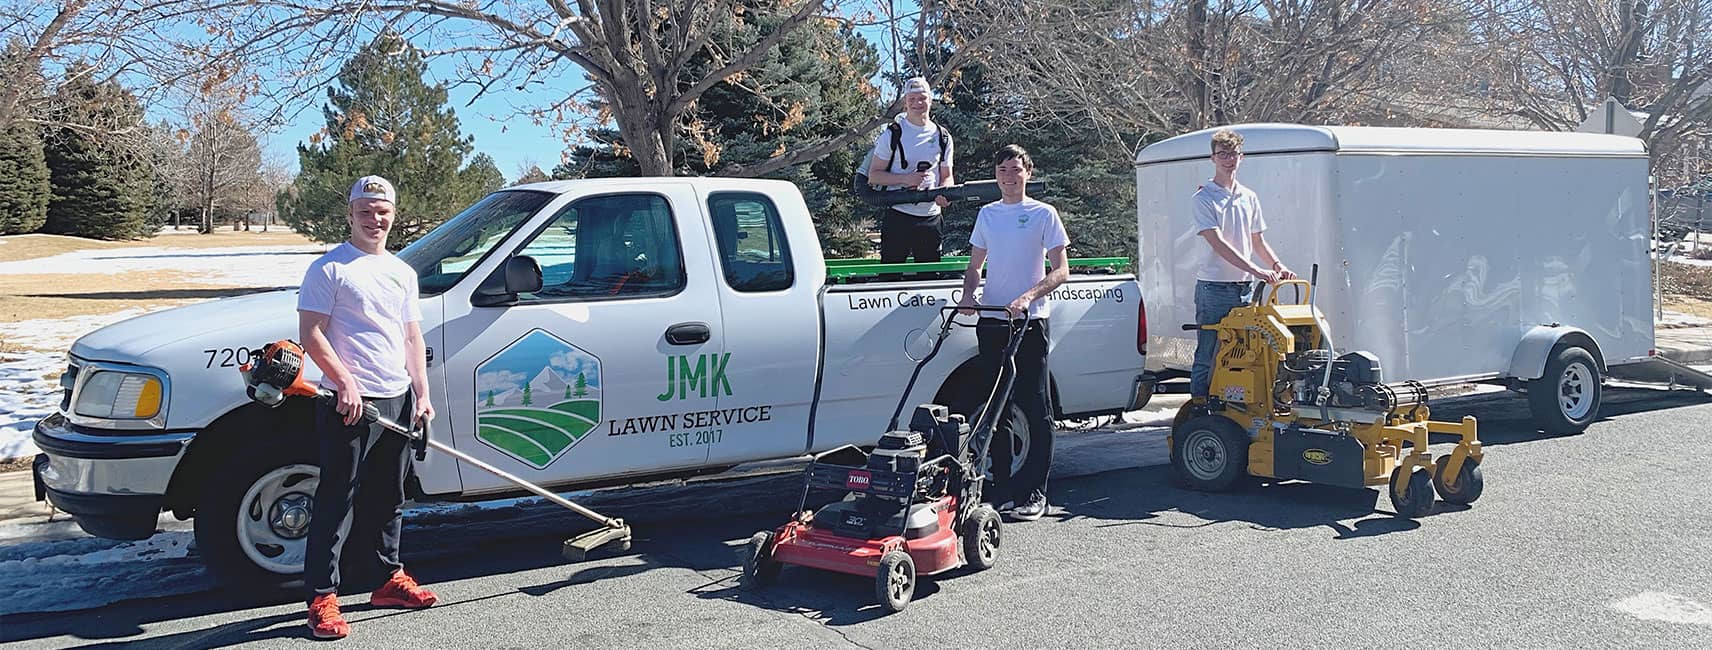 Boulder Lawn Care Services, Lawn Service and Lawn Mowing Service